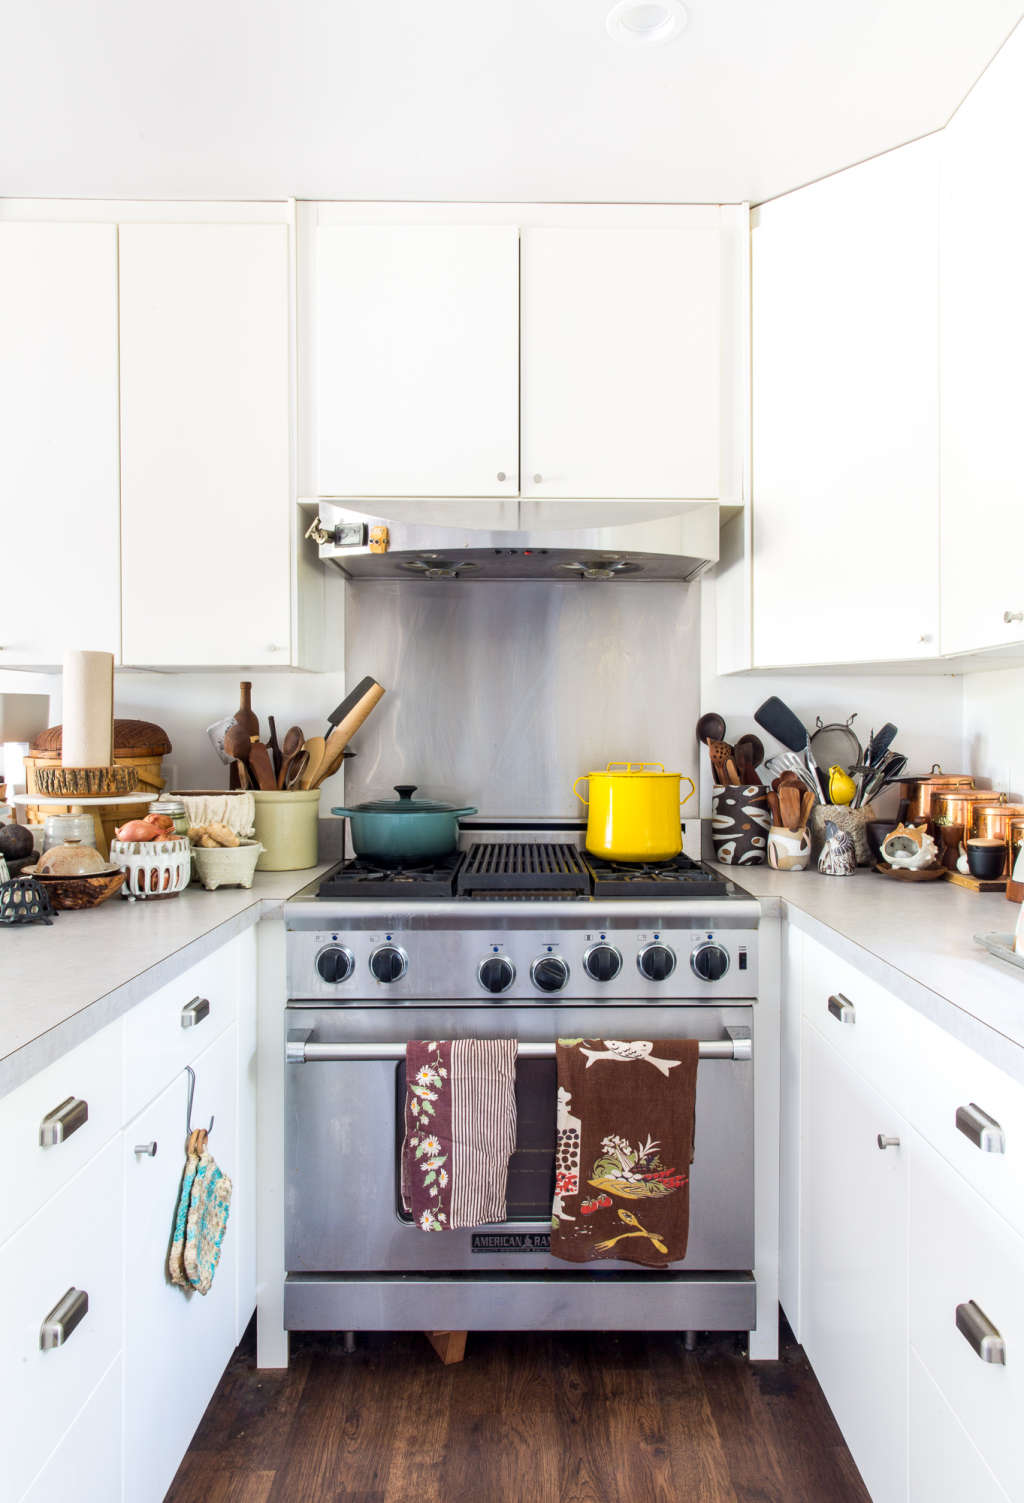 Declutter Your Counters With this Gravity-Defying $15 Find